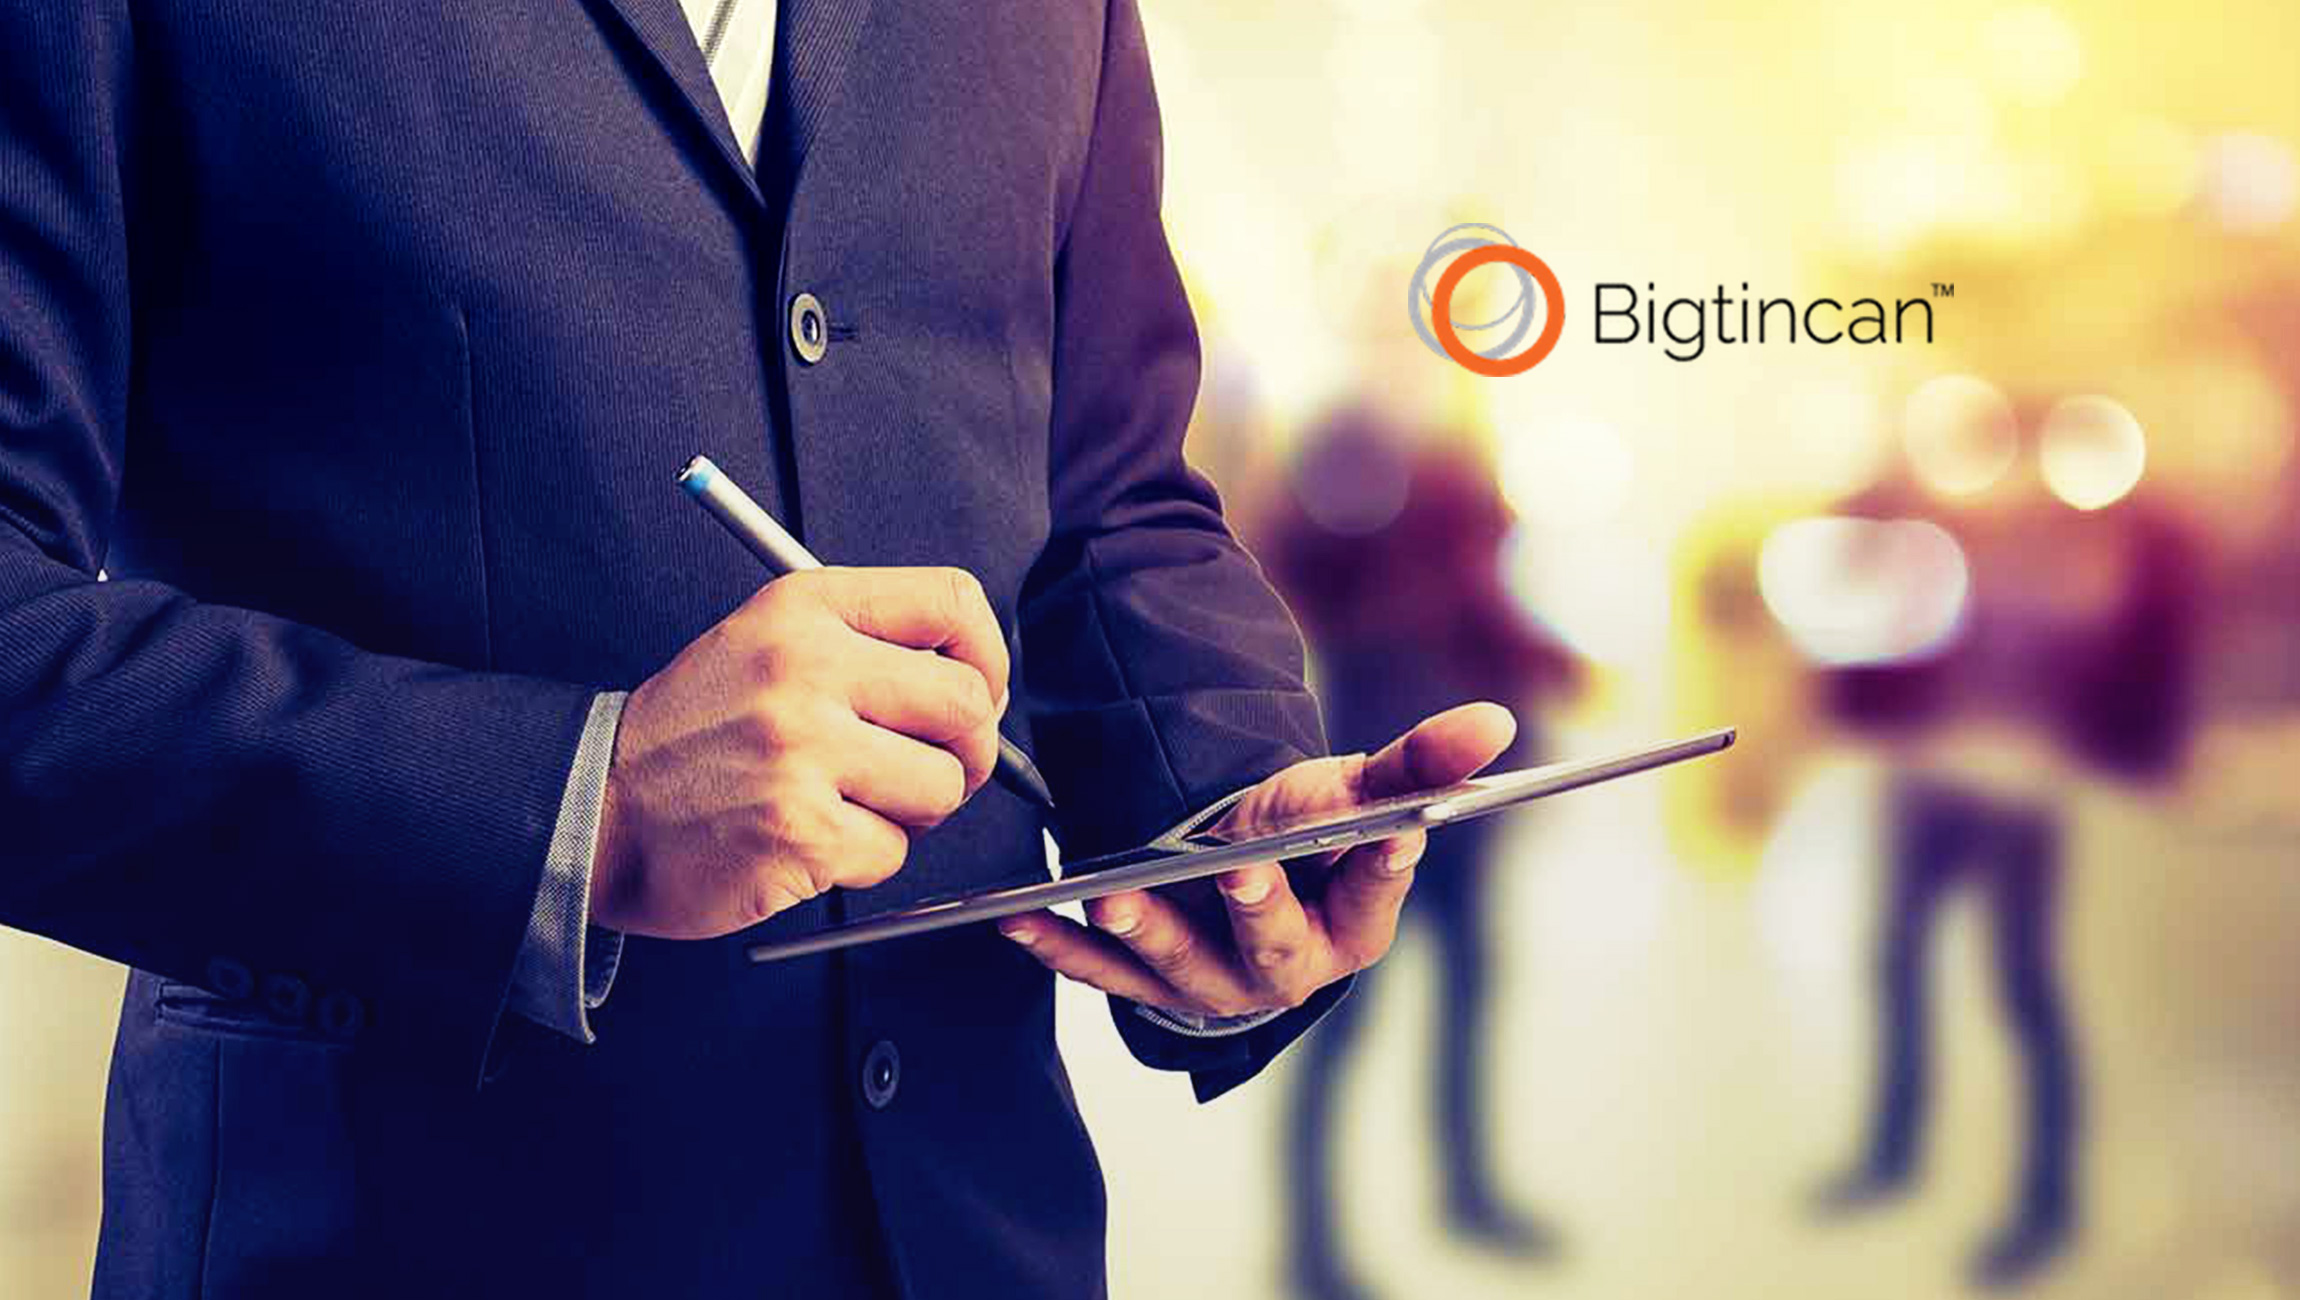 Bigtincan Exceeds 100 Technology Integrations, with Popular Products Being Used Across the Enterprise